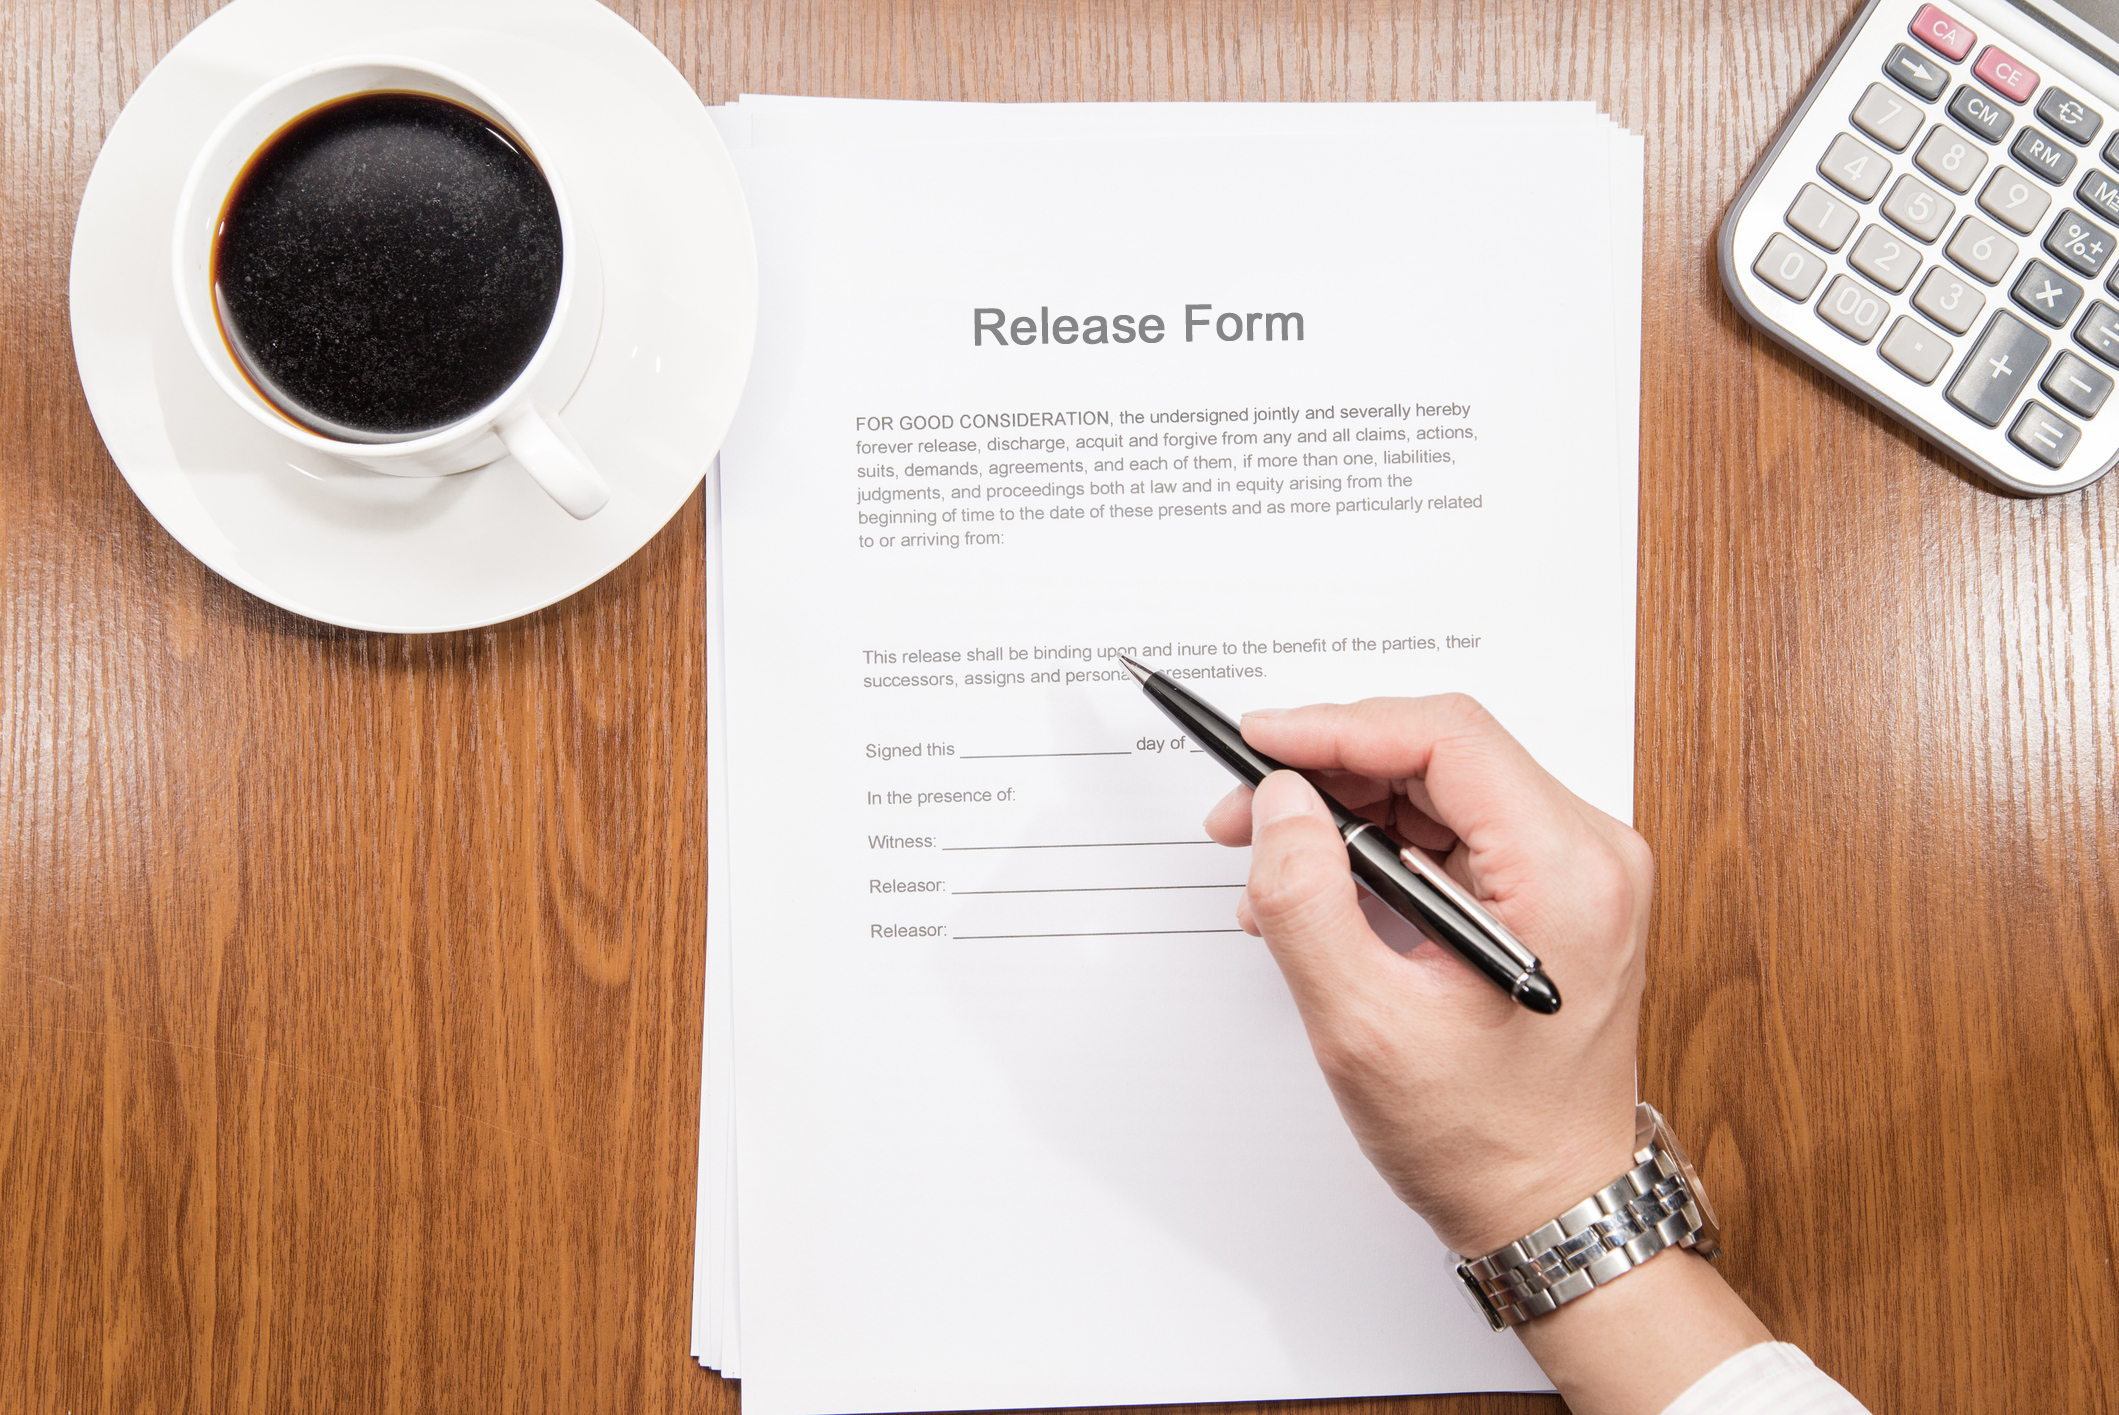 Free Liability Release Forms – Free Liability Release Forms Printable Online